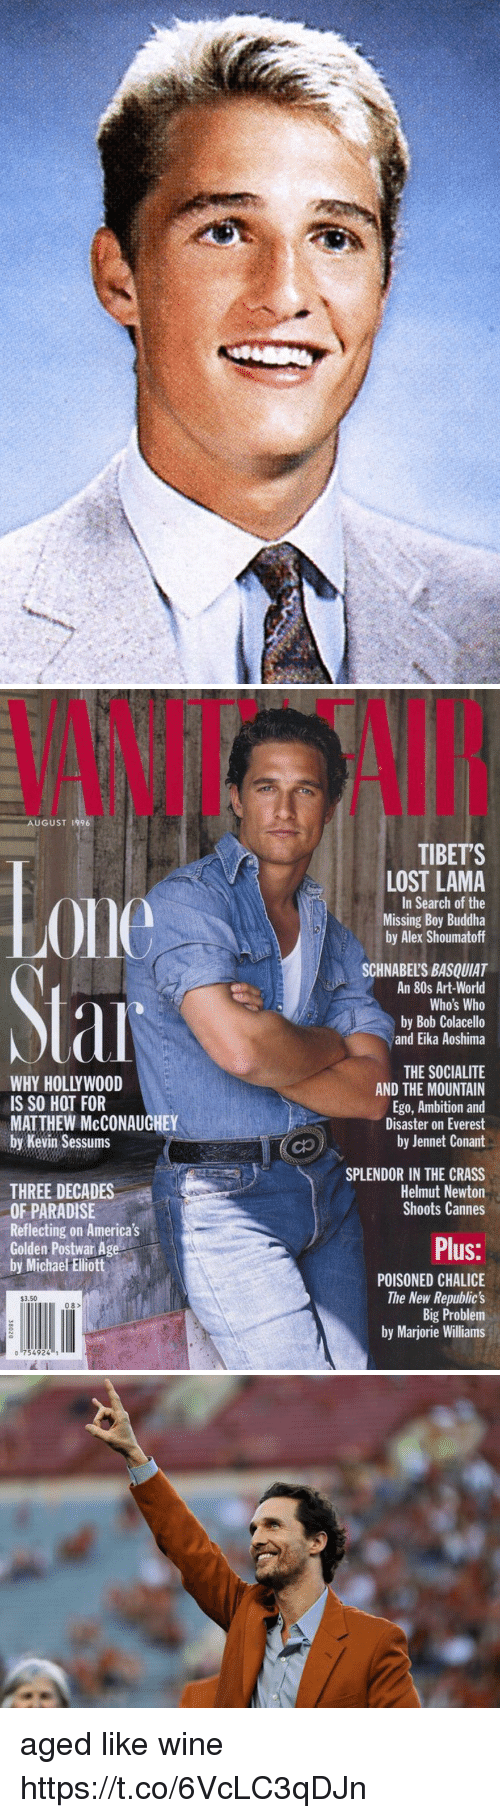 the mountain: VANIT  AI  AUGUST 1996  TIBETS  0ne  LOST LAMA  In Search of the  Missing Boy Buddha  by Alex Shoumatoff  SCHNABEL'S BASQUIAT  An 80s Art-World  Who's Who  by Bob Colacello  and Eika Aoshima  WHY HOLLYWOOD  IS SO HOT FOR  MATTHEW McCONAUGHEY  by Kevin Sessums  THE SOCIALITE  AND THE MOUNTAIN  Ego, Ambition and  Disaster on Everest  by Jennet Conant  SPLENDOR IN THE CRASS  Helmut Newton  Shoots Cannes  THREE DECADES  OF PARADISE  Reflecting on America's  Golden Postwar Age  by Michae Ellott  Plus:  POISONED CHALICE  The New Republic's  Big Problem  by Marjorie Williams  $3.50  08>  o 754924 aged like wine https://t.co/6VcLC3qDJn